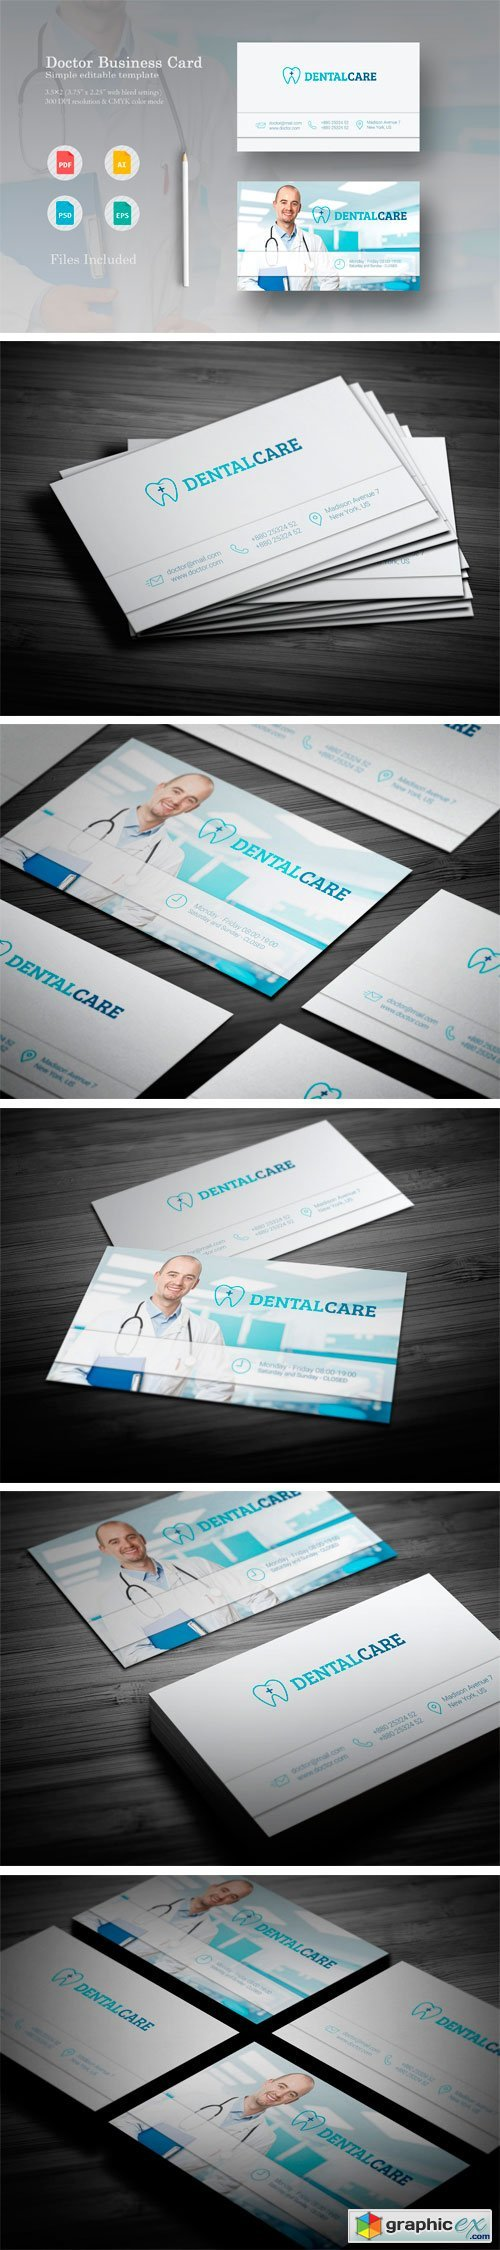 Dental Care Business Card